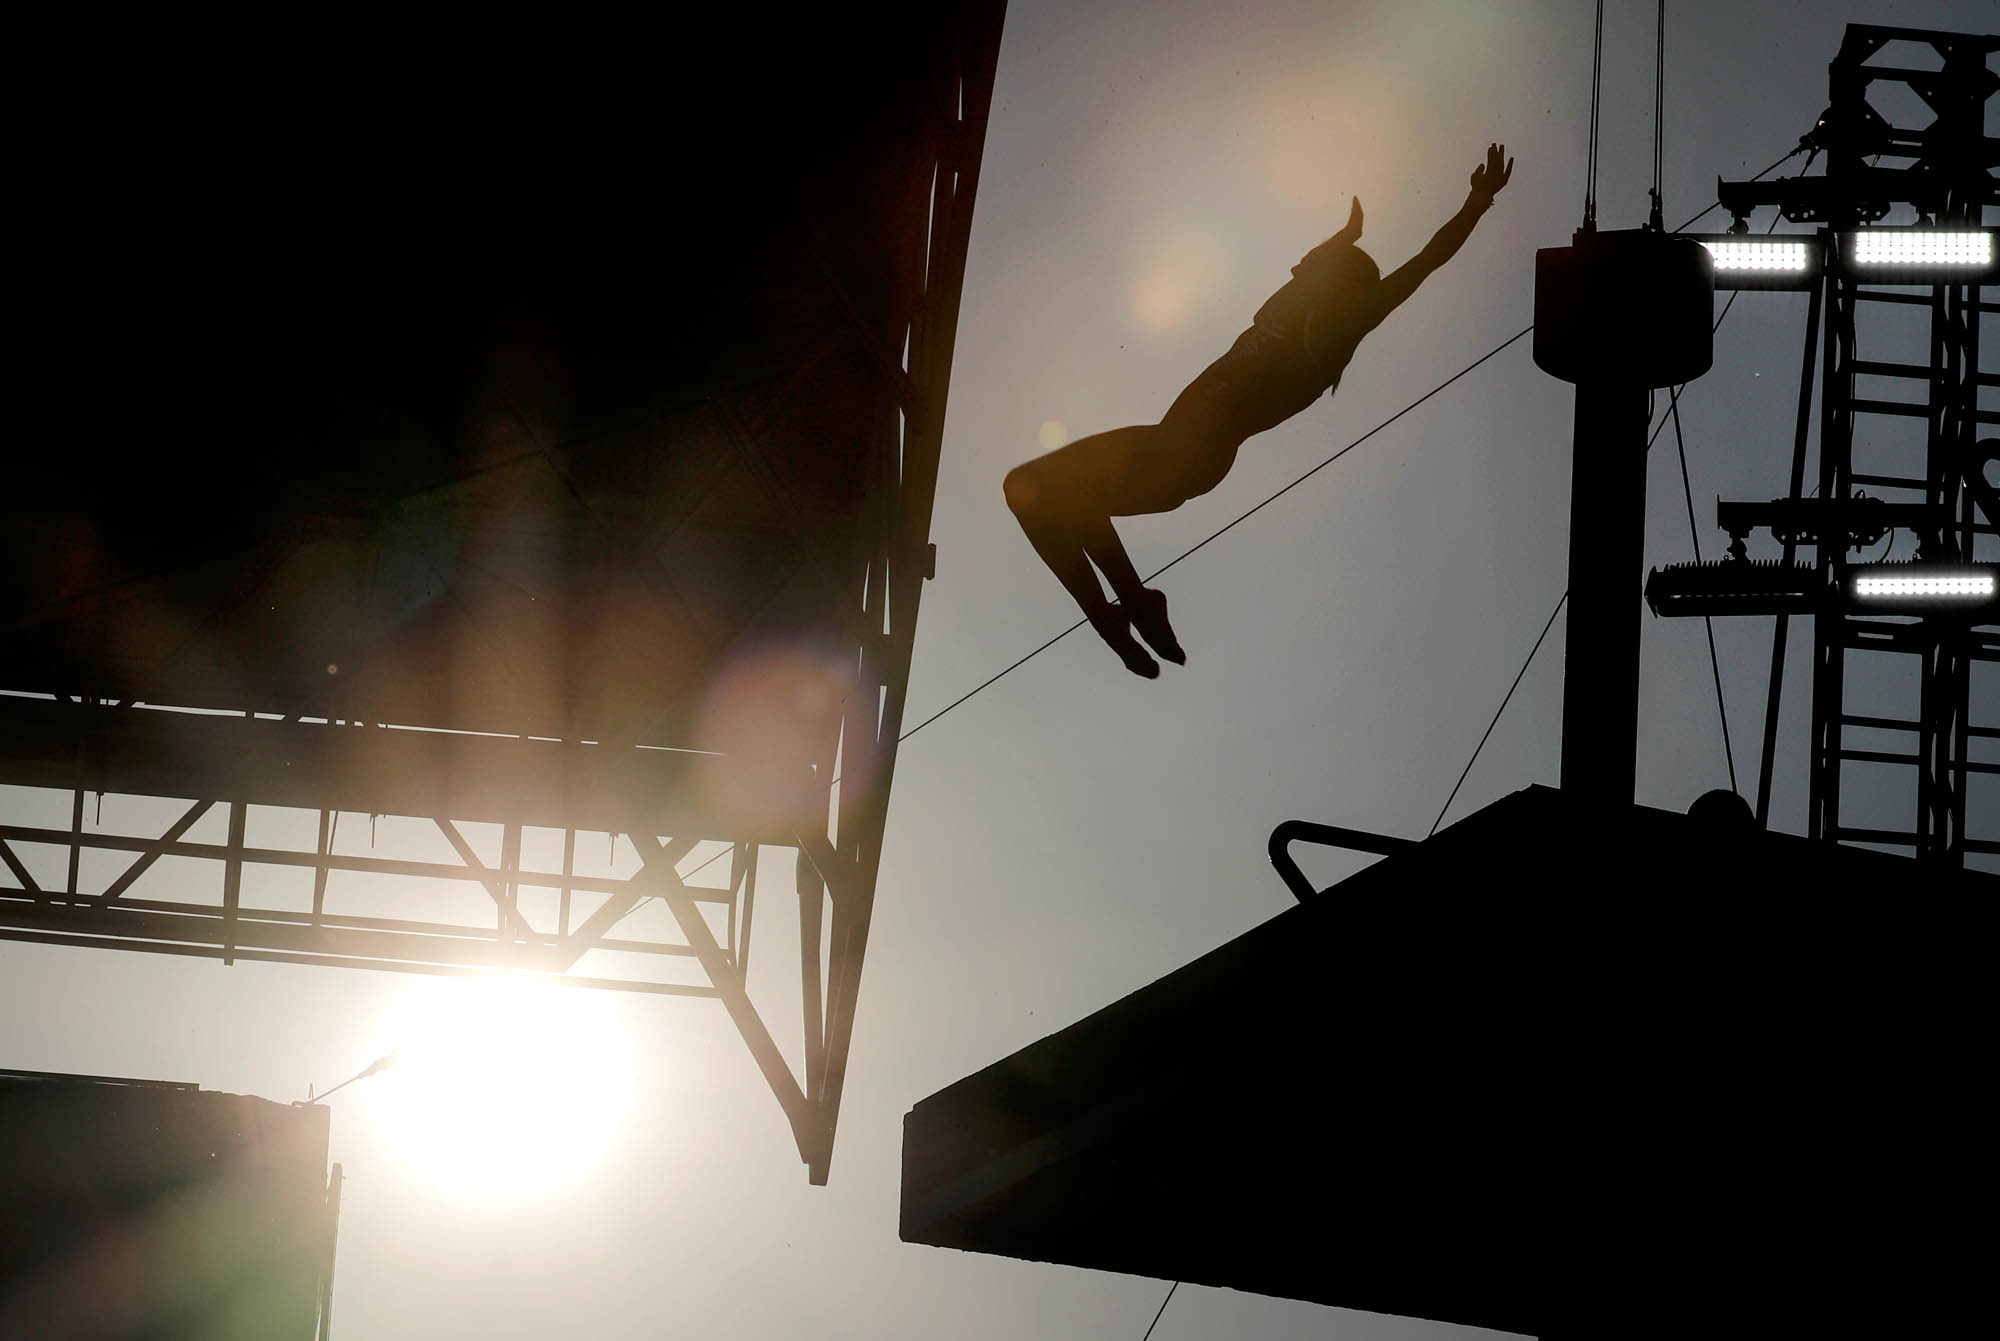 Silhouette of person diving off platform (© AP Images)